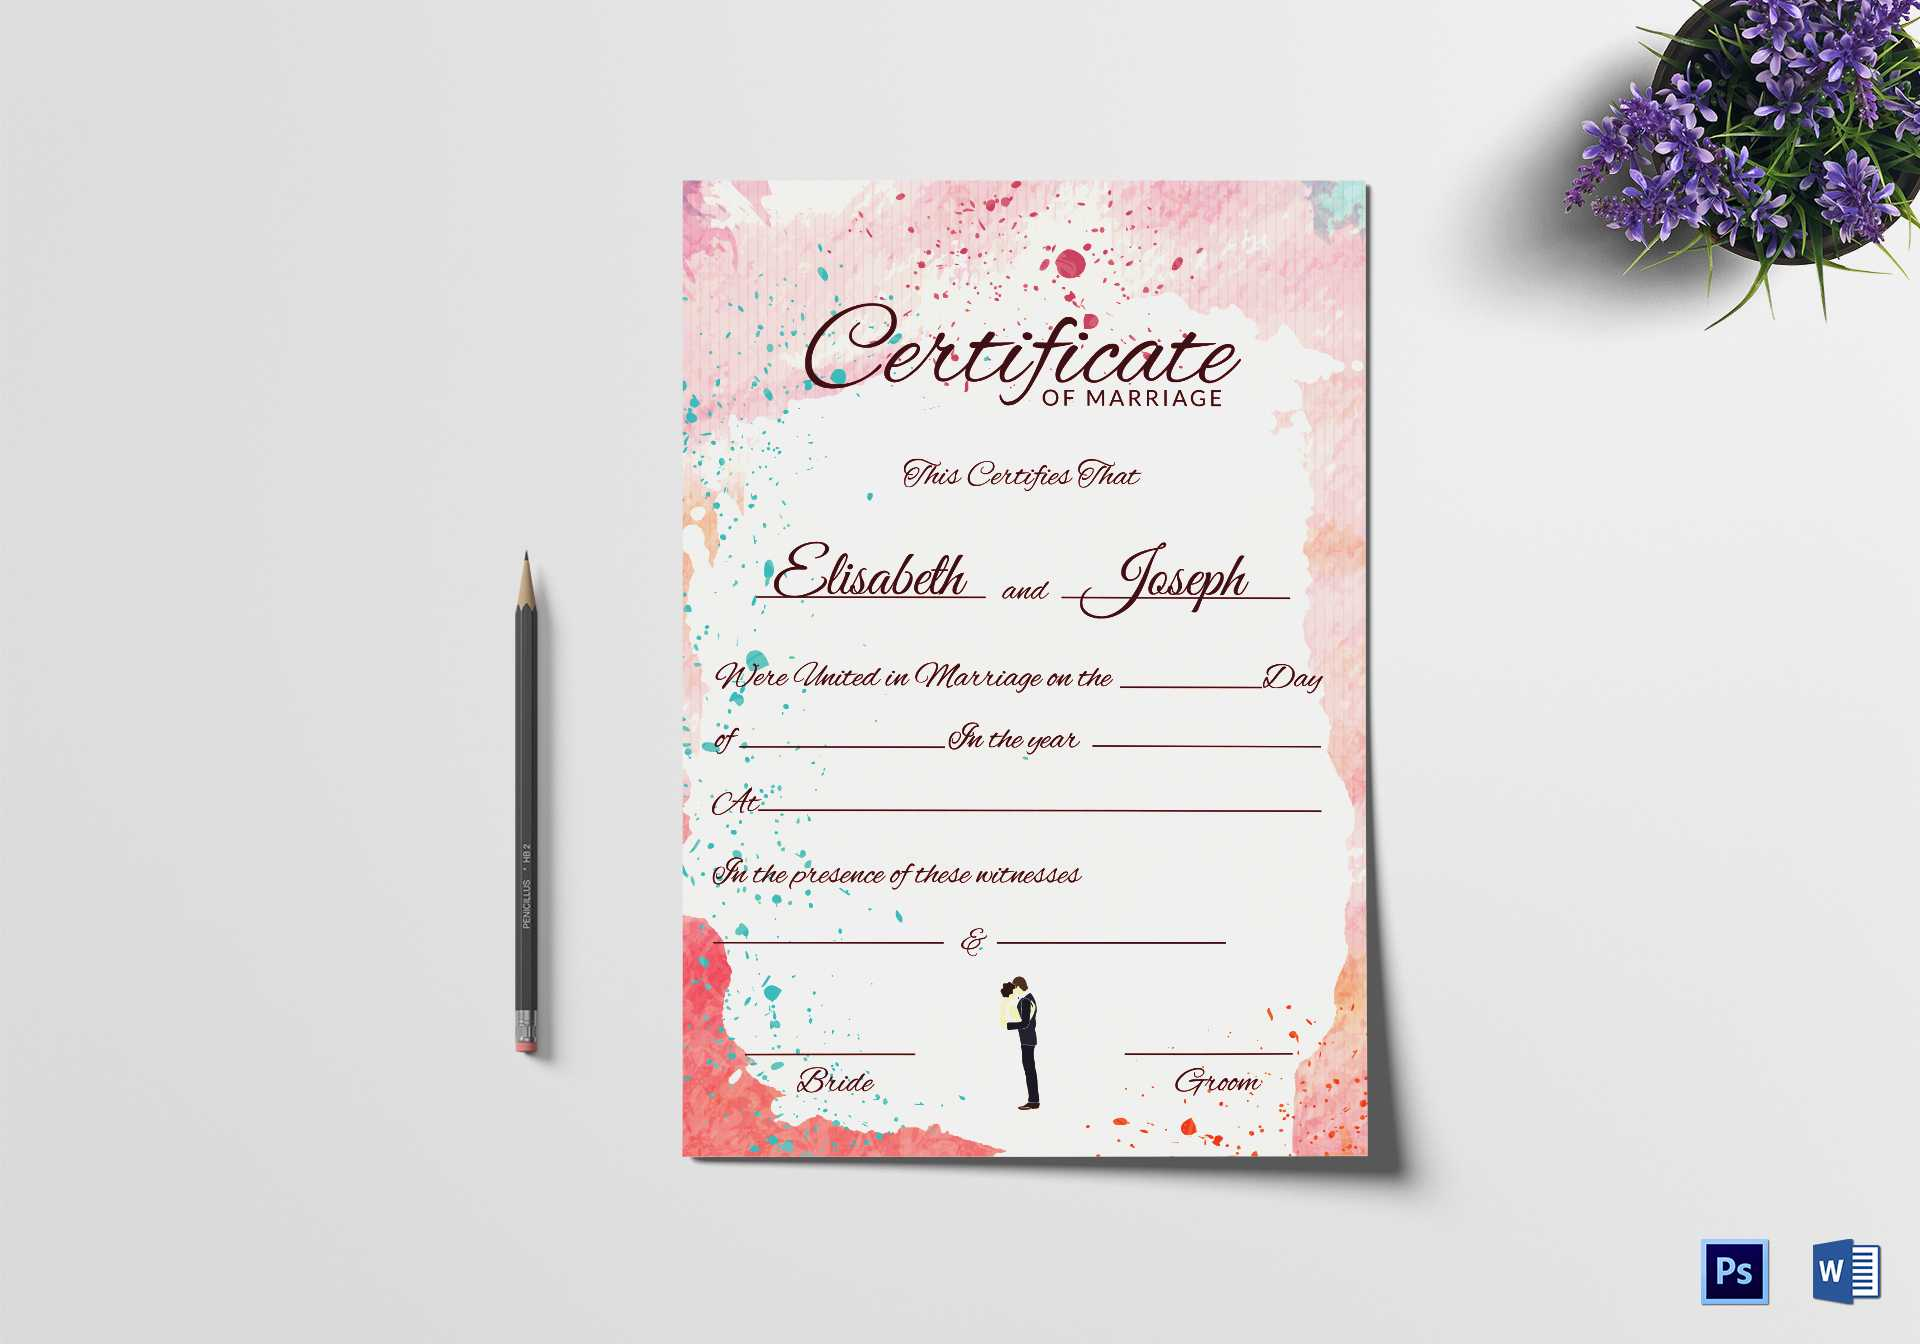 Christian Marriage Certificate Template with Certificate Of Marriage Template